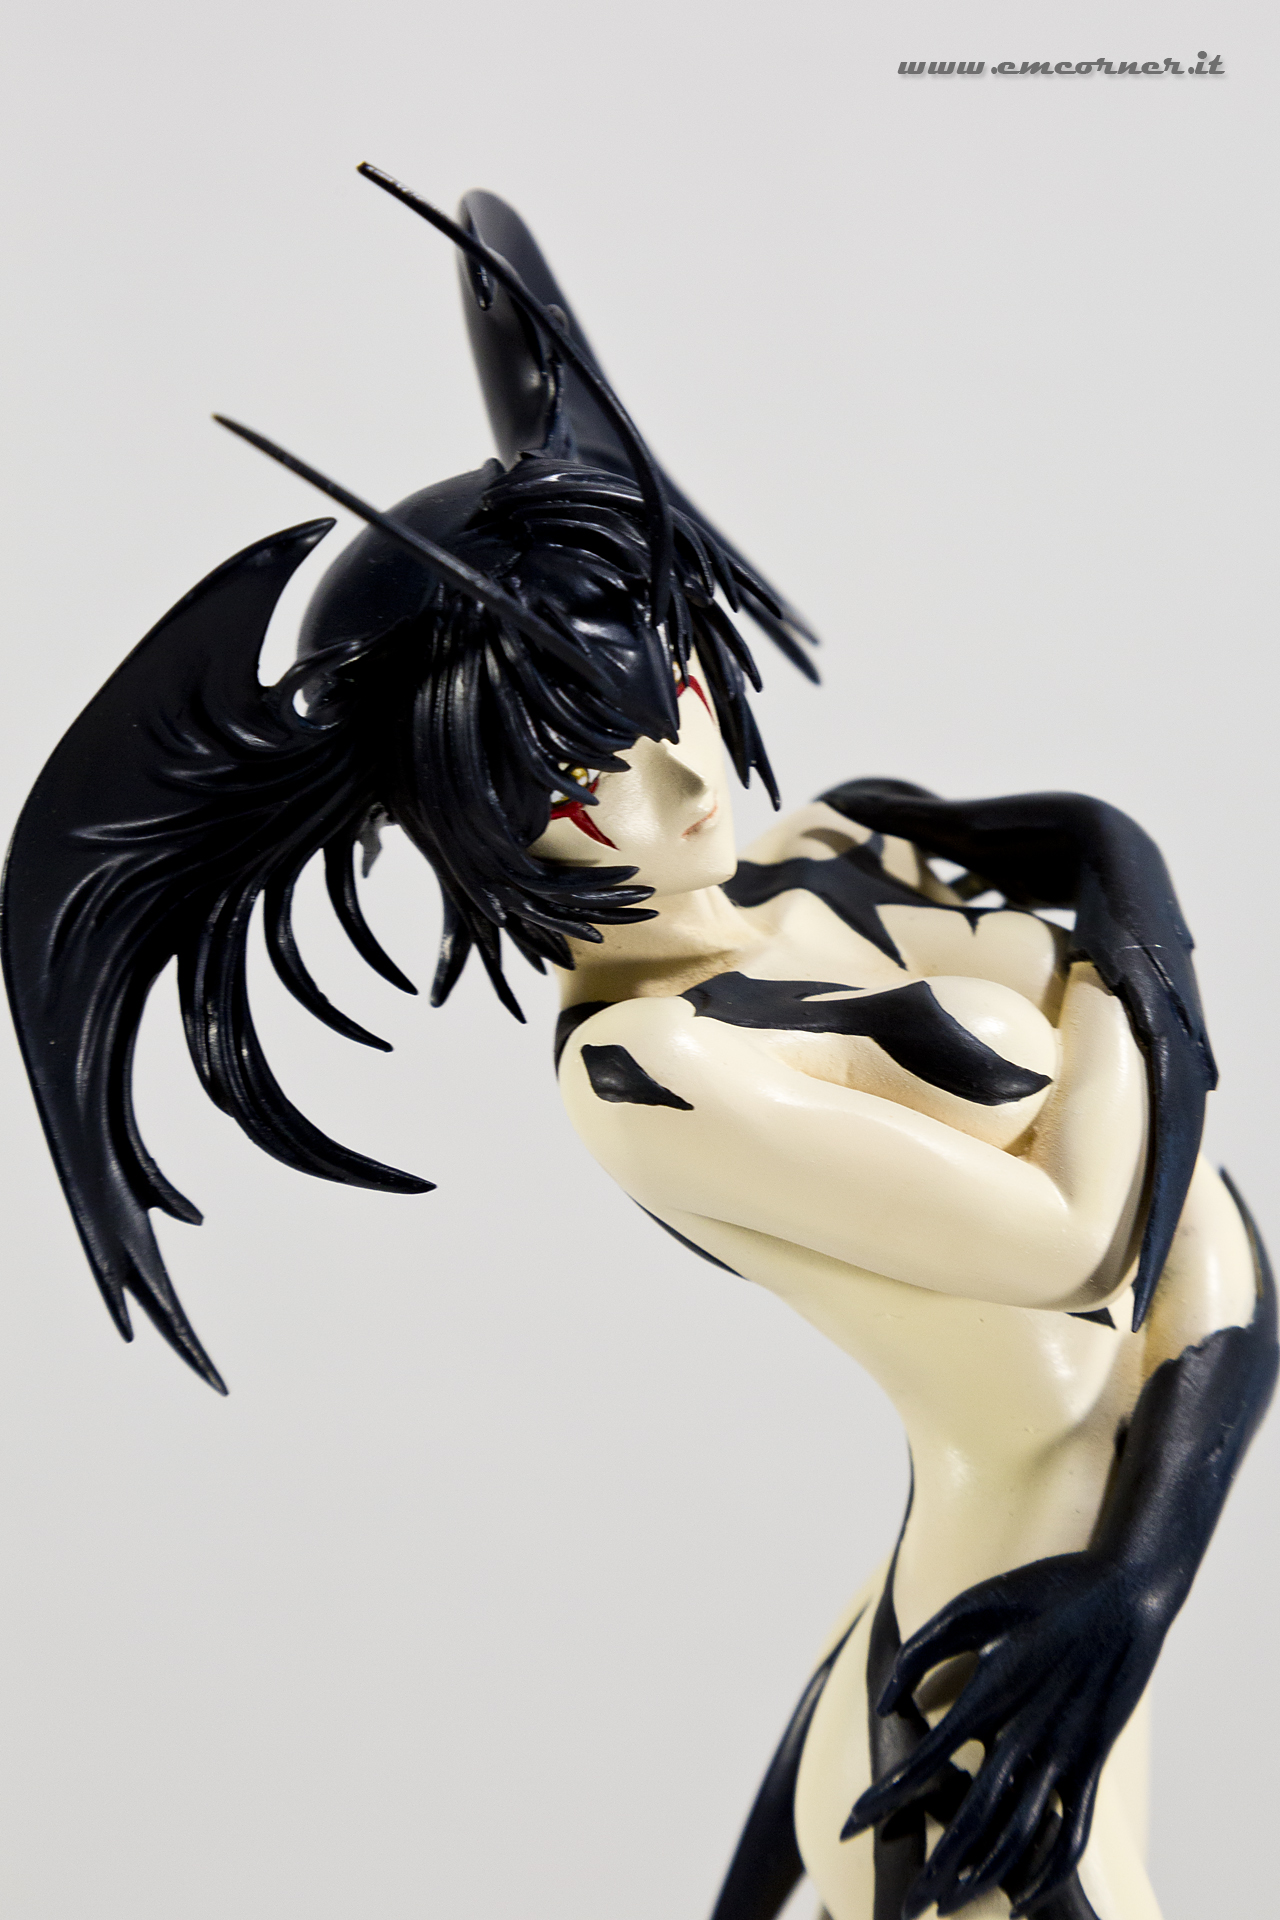 new-line-devilman-devil-lady-pre-painted-coldcast-2_-emcorner-it_-5